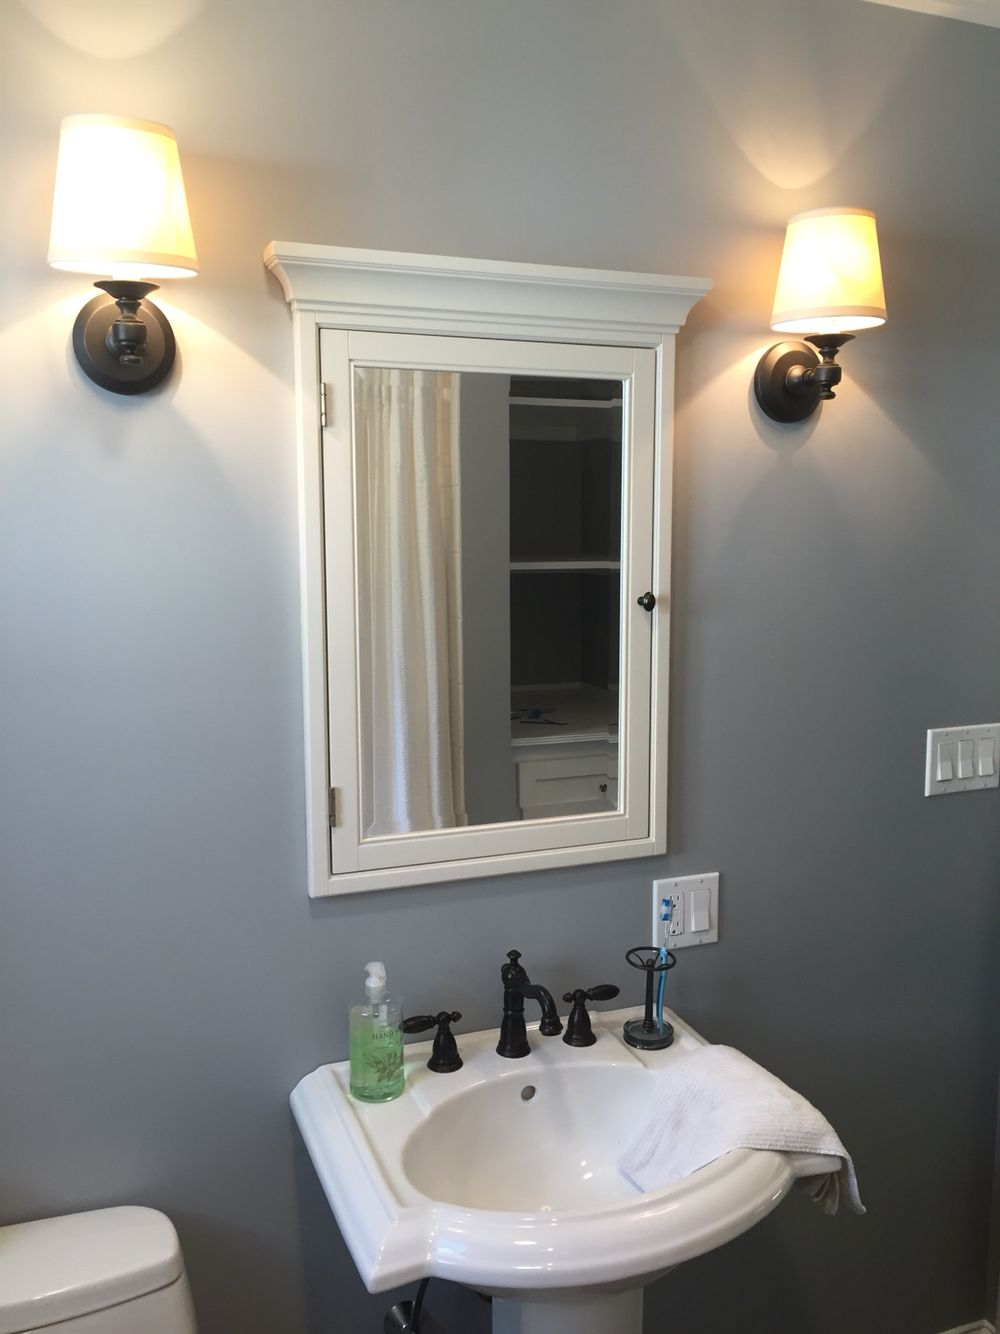 Sherwin williams monochrome blue gray paint pottery barn medicine cabinet restoration for Pottery barn bathroom paint colors